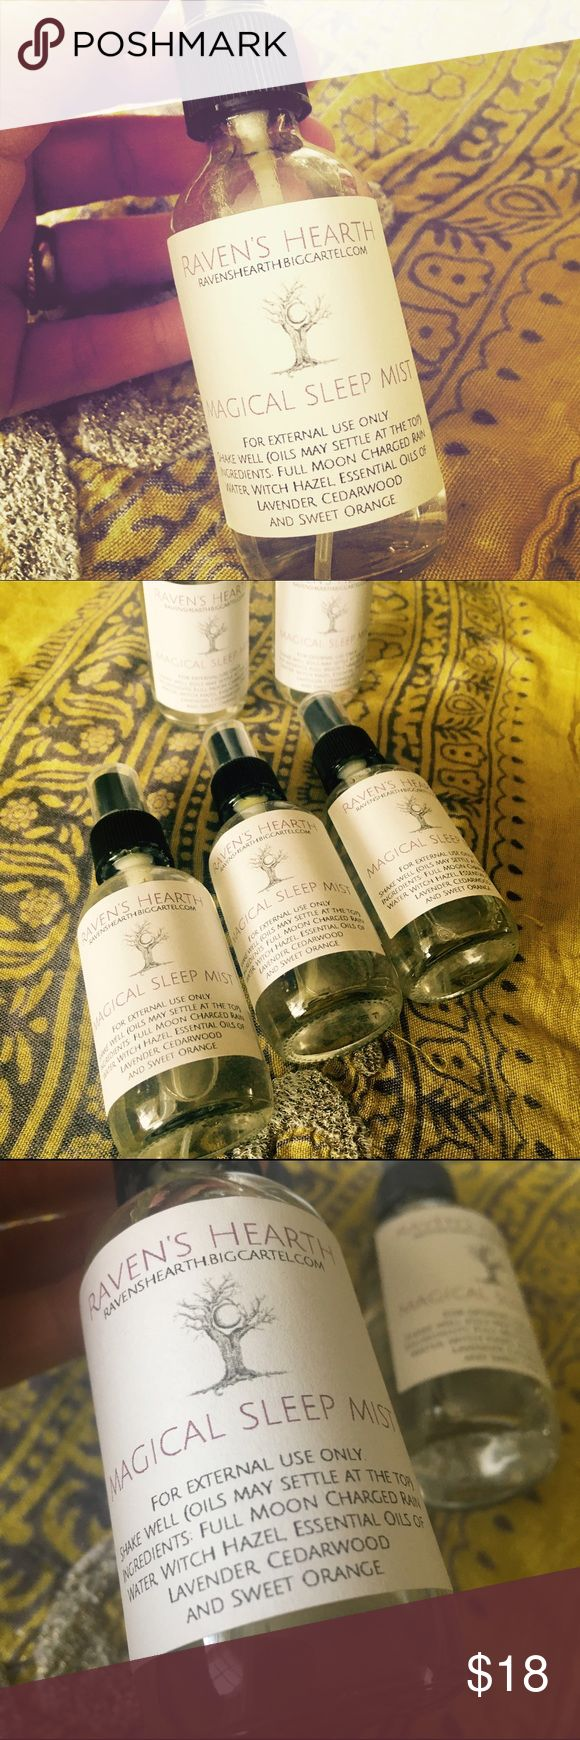 🔮Magical Sleep Mist🔮 Aromatherapy Now I lay me down to rest  I pray that all the world be blessed. Infused with essential oils of lavender, cedarwood and sweet orange, this Full Moon charged rainwater spray will help with relaxation as well as stimulating melatonin release and suppression of anxiety.  For external use only. Do not swallow.  Ingredients: Full Moon Charged Rainwater, Witch Hazel, Essential Oils of Lavender, Cedarwood and Sweet Orange.  * Shake well. Oils may settle at the…